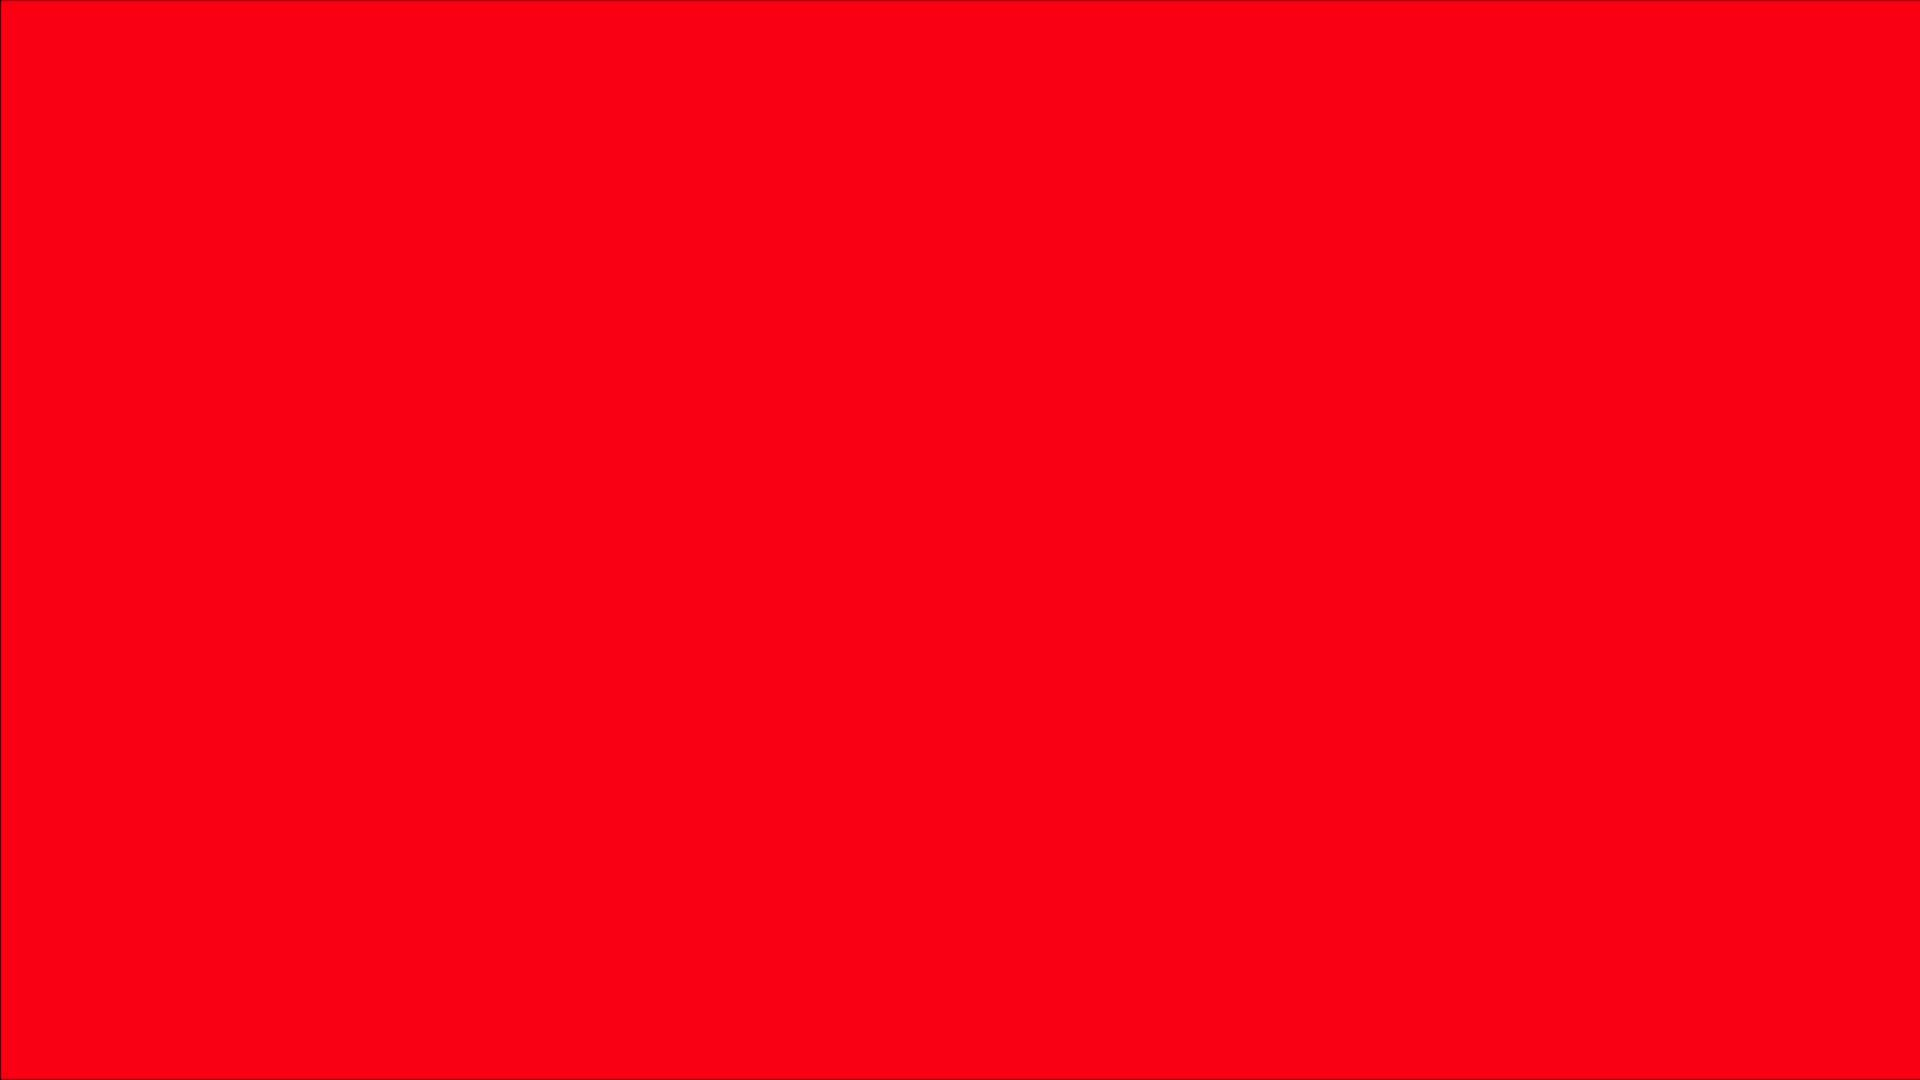 FF0000 RED (SCREEN)